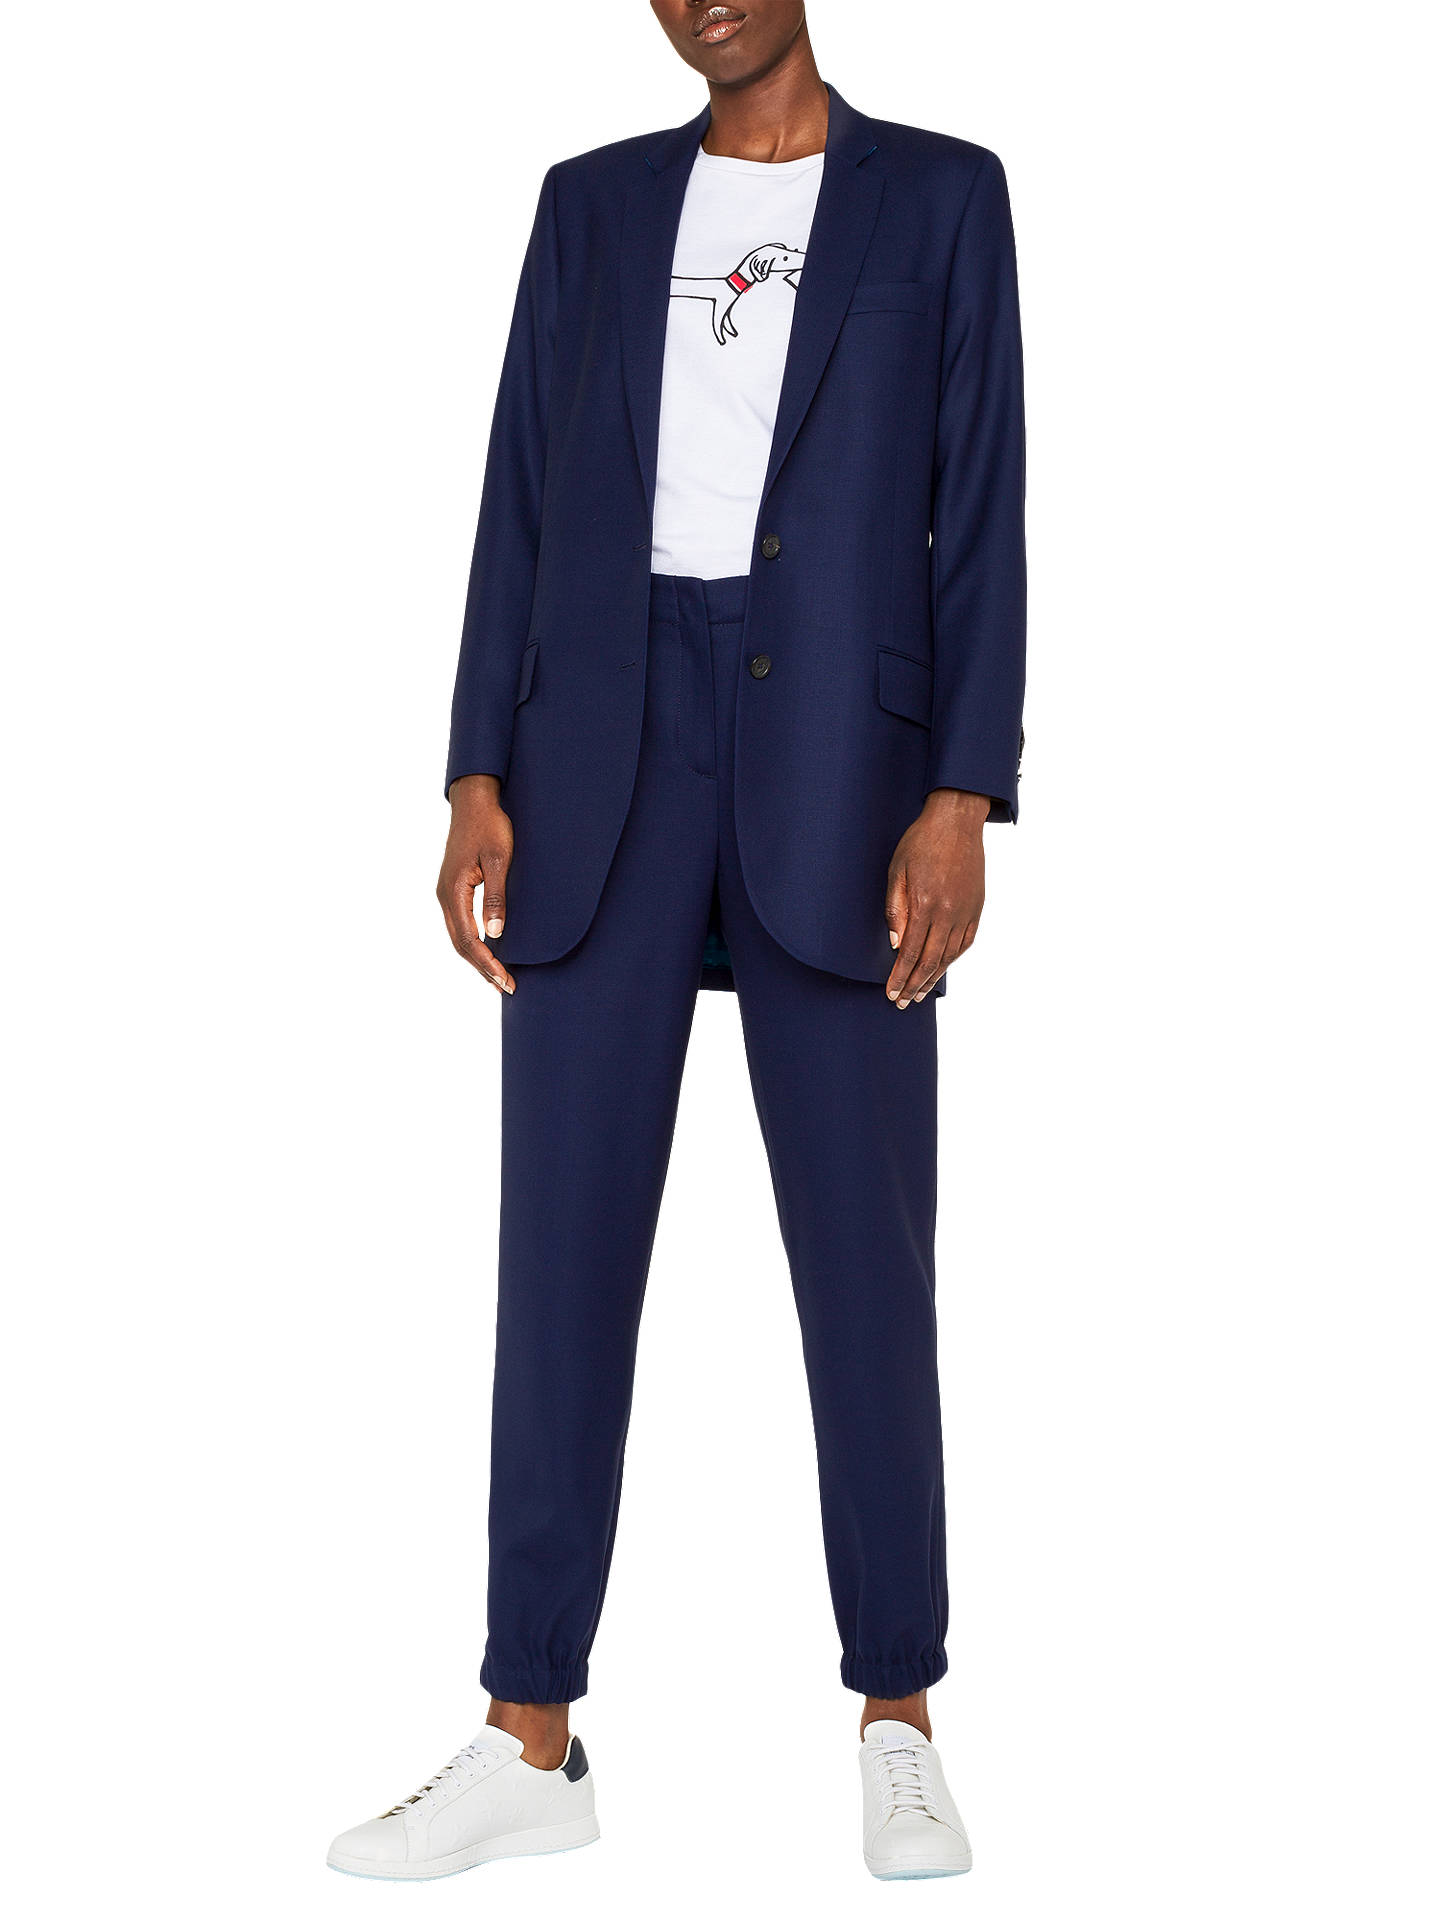 BuyPS Paul Smith Tailored Jacket, Navy, 8 Online at johnlewis.com